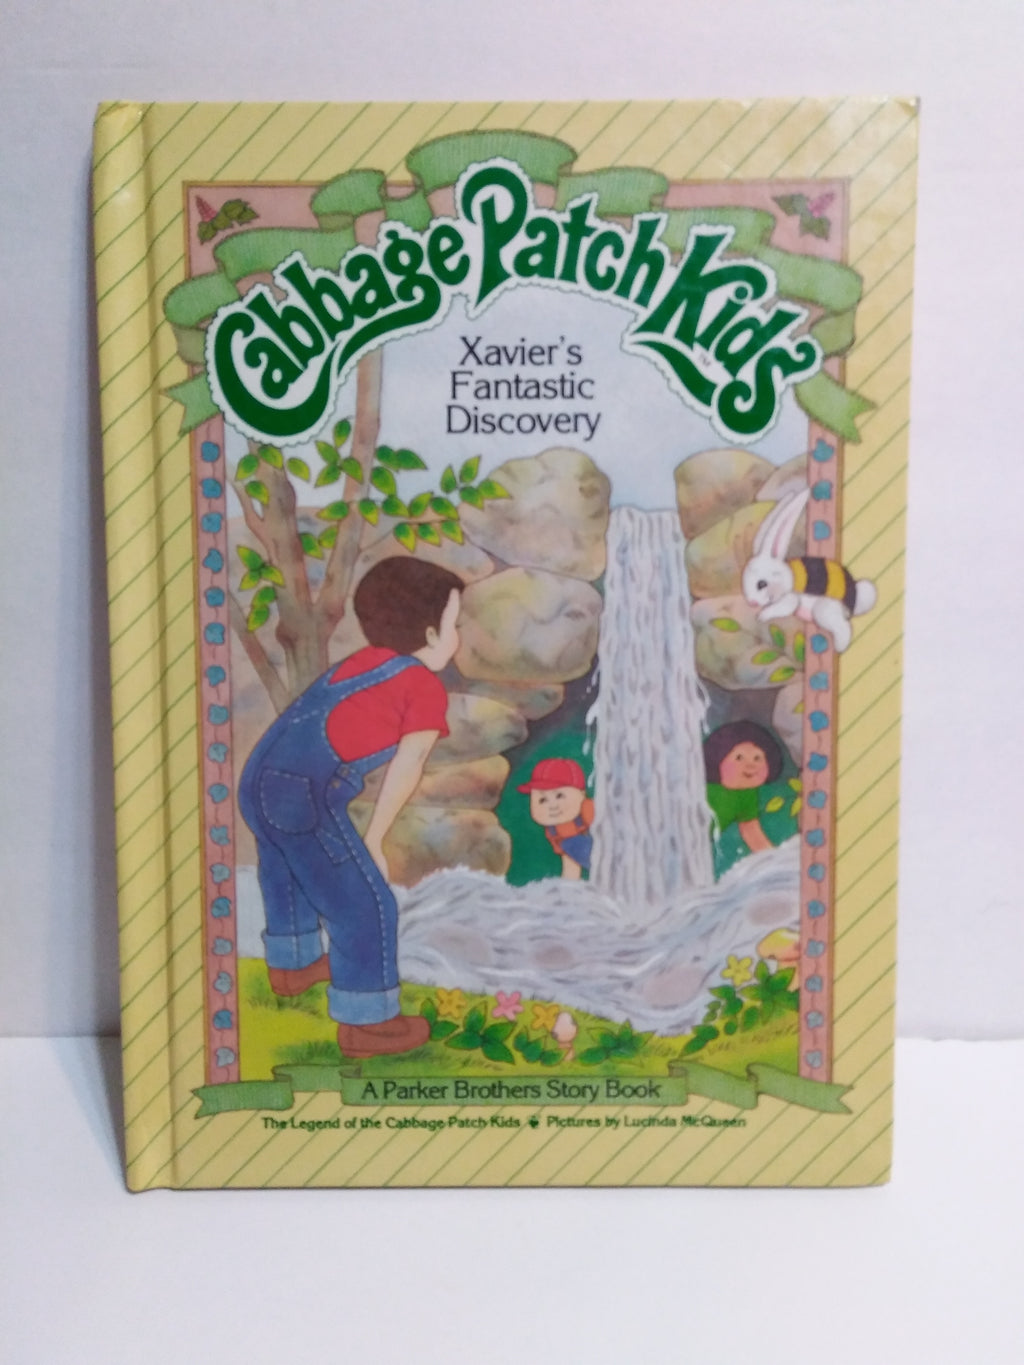 Cabbage Patch Kids HC Book Xavier's Fantastic Discovery - We Got Character